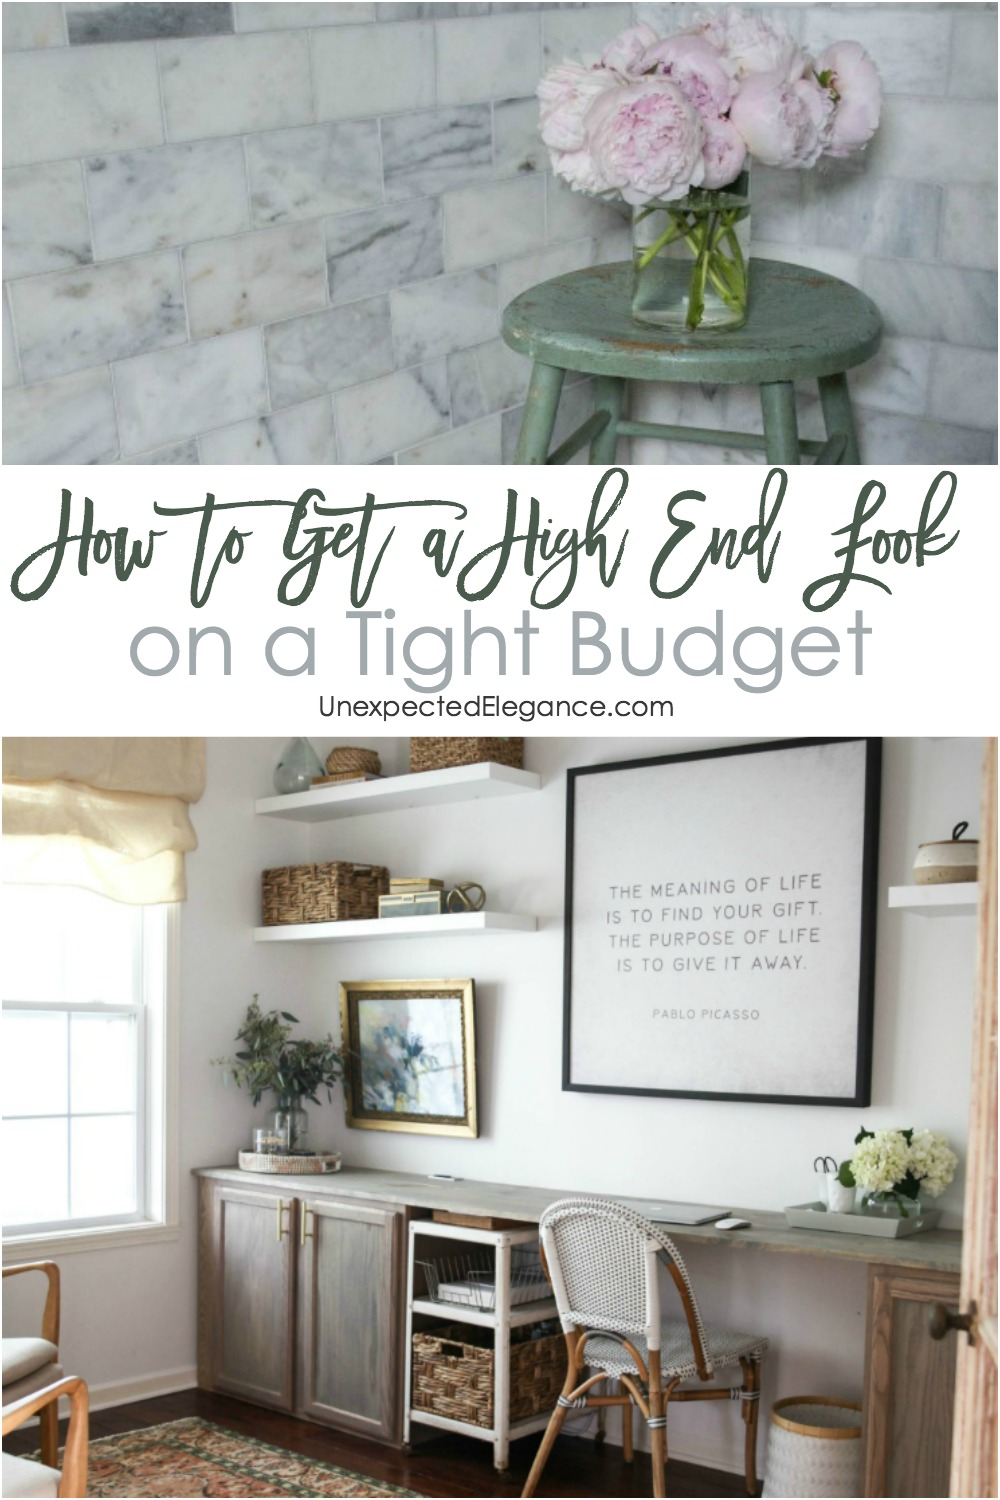 Want your house to look high end, without the high price tag? Click here to see what elements you need to create the look on a budget!